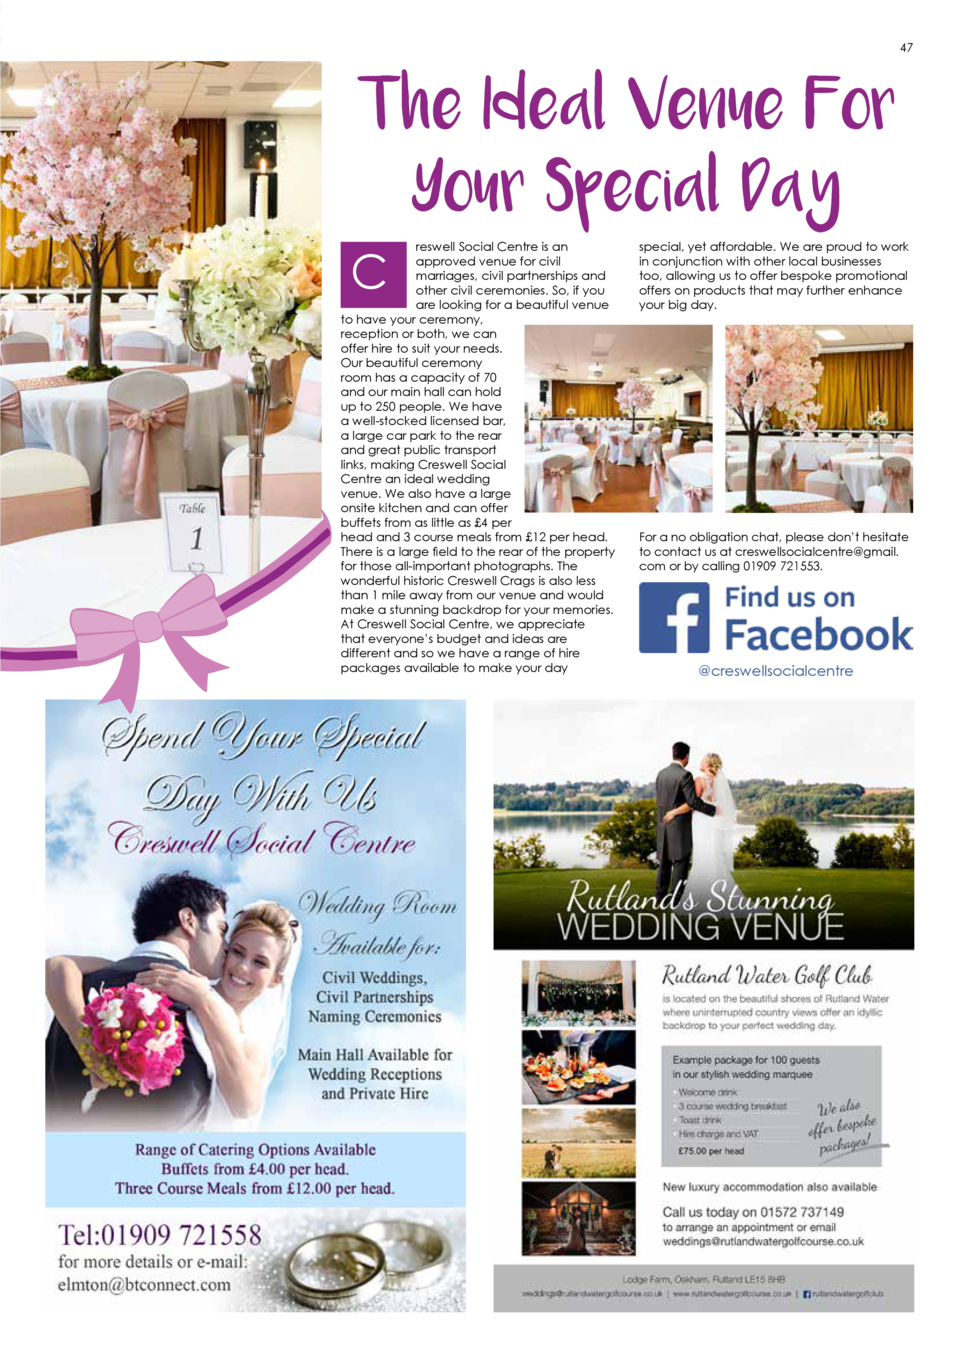 47  The Ideal Venue For Your Special Day  reswell Social Centre is an approved venue for civil marriages, civil partnershi...